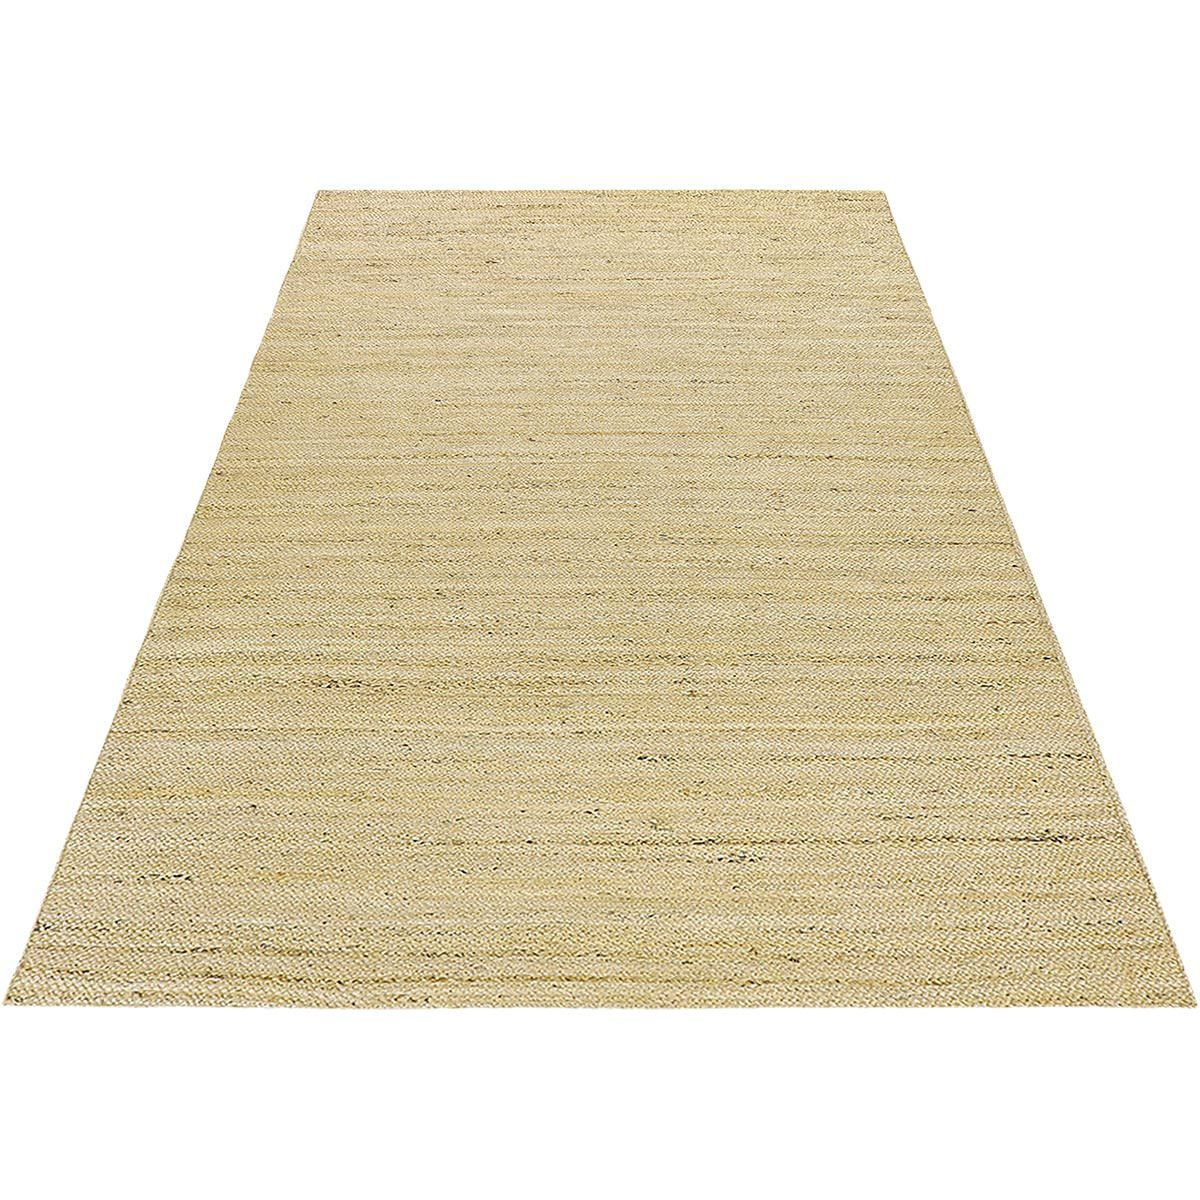 Flat Jute Rug 01 Light Beige 2